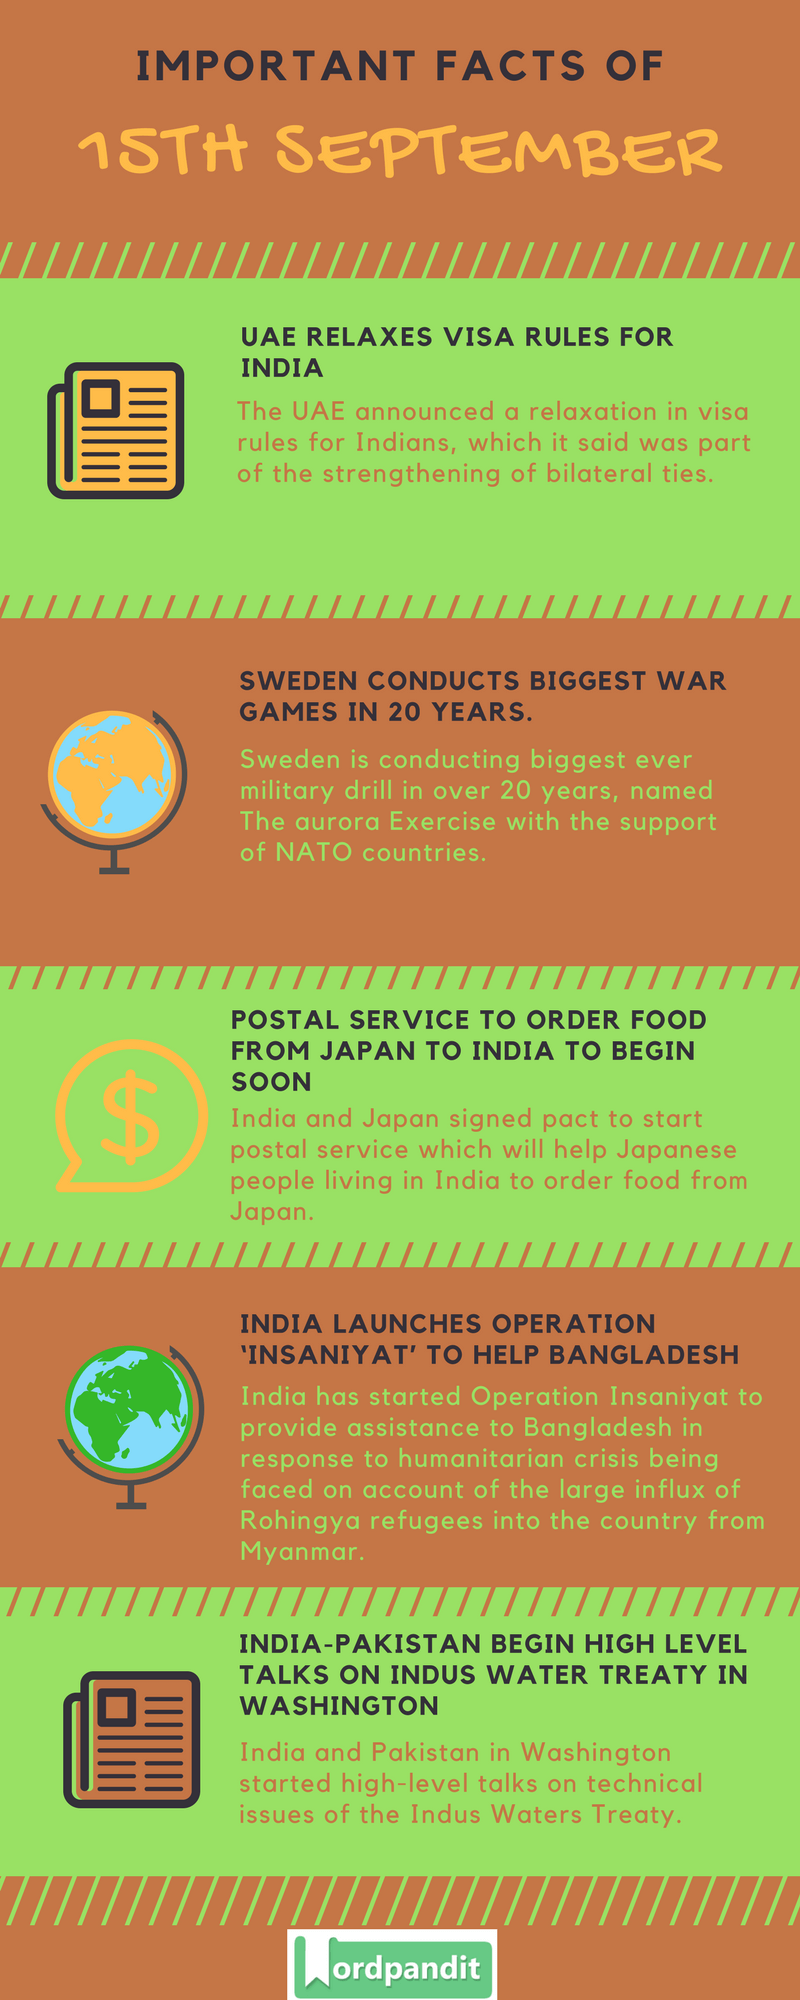 Daily-Current-Affairs-15-september-2017-Current-Affairs-Quiz-september-15-2017-Current-Affairs-Infographic